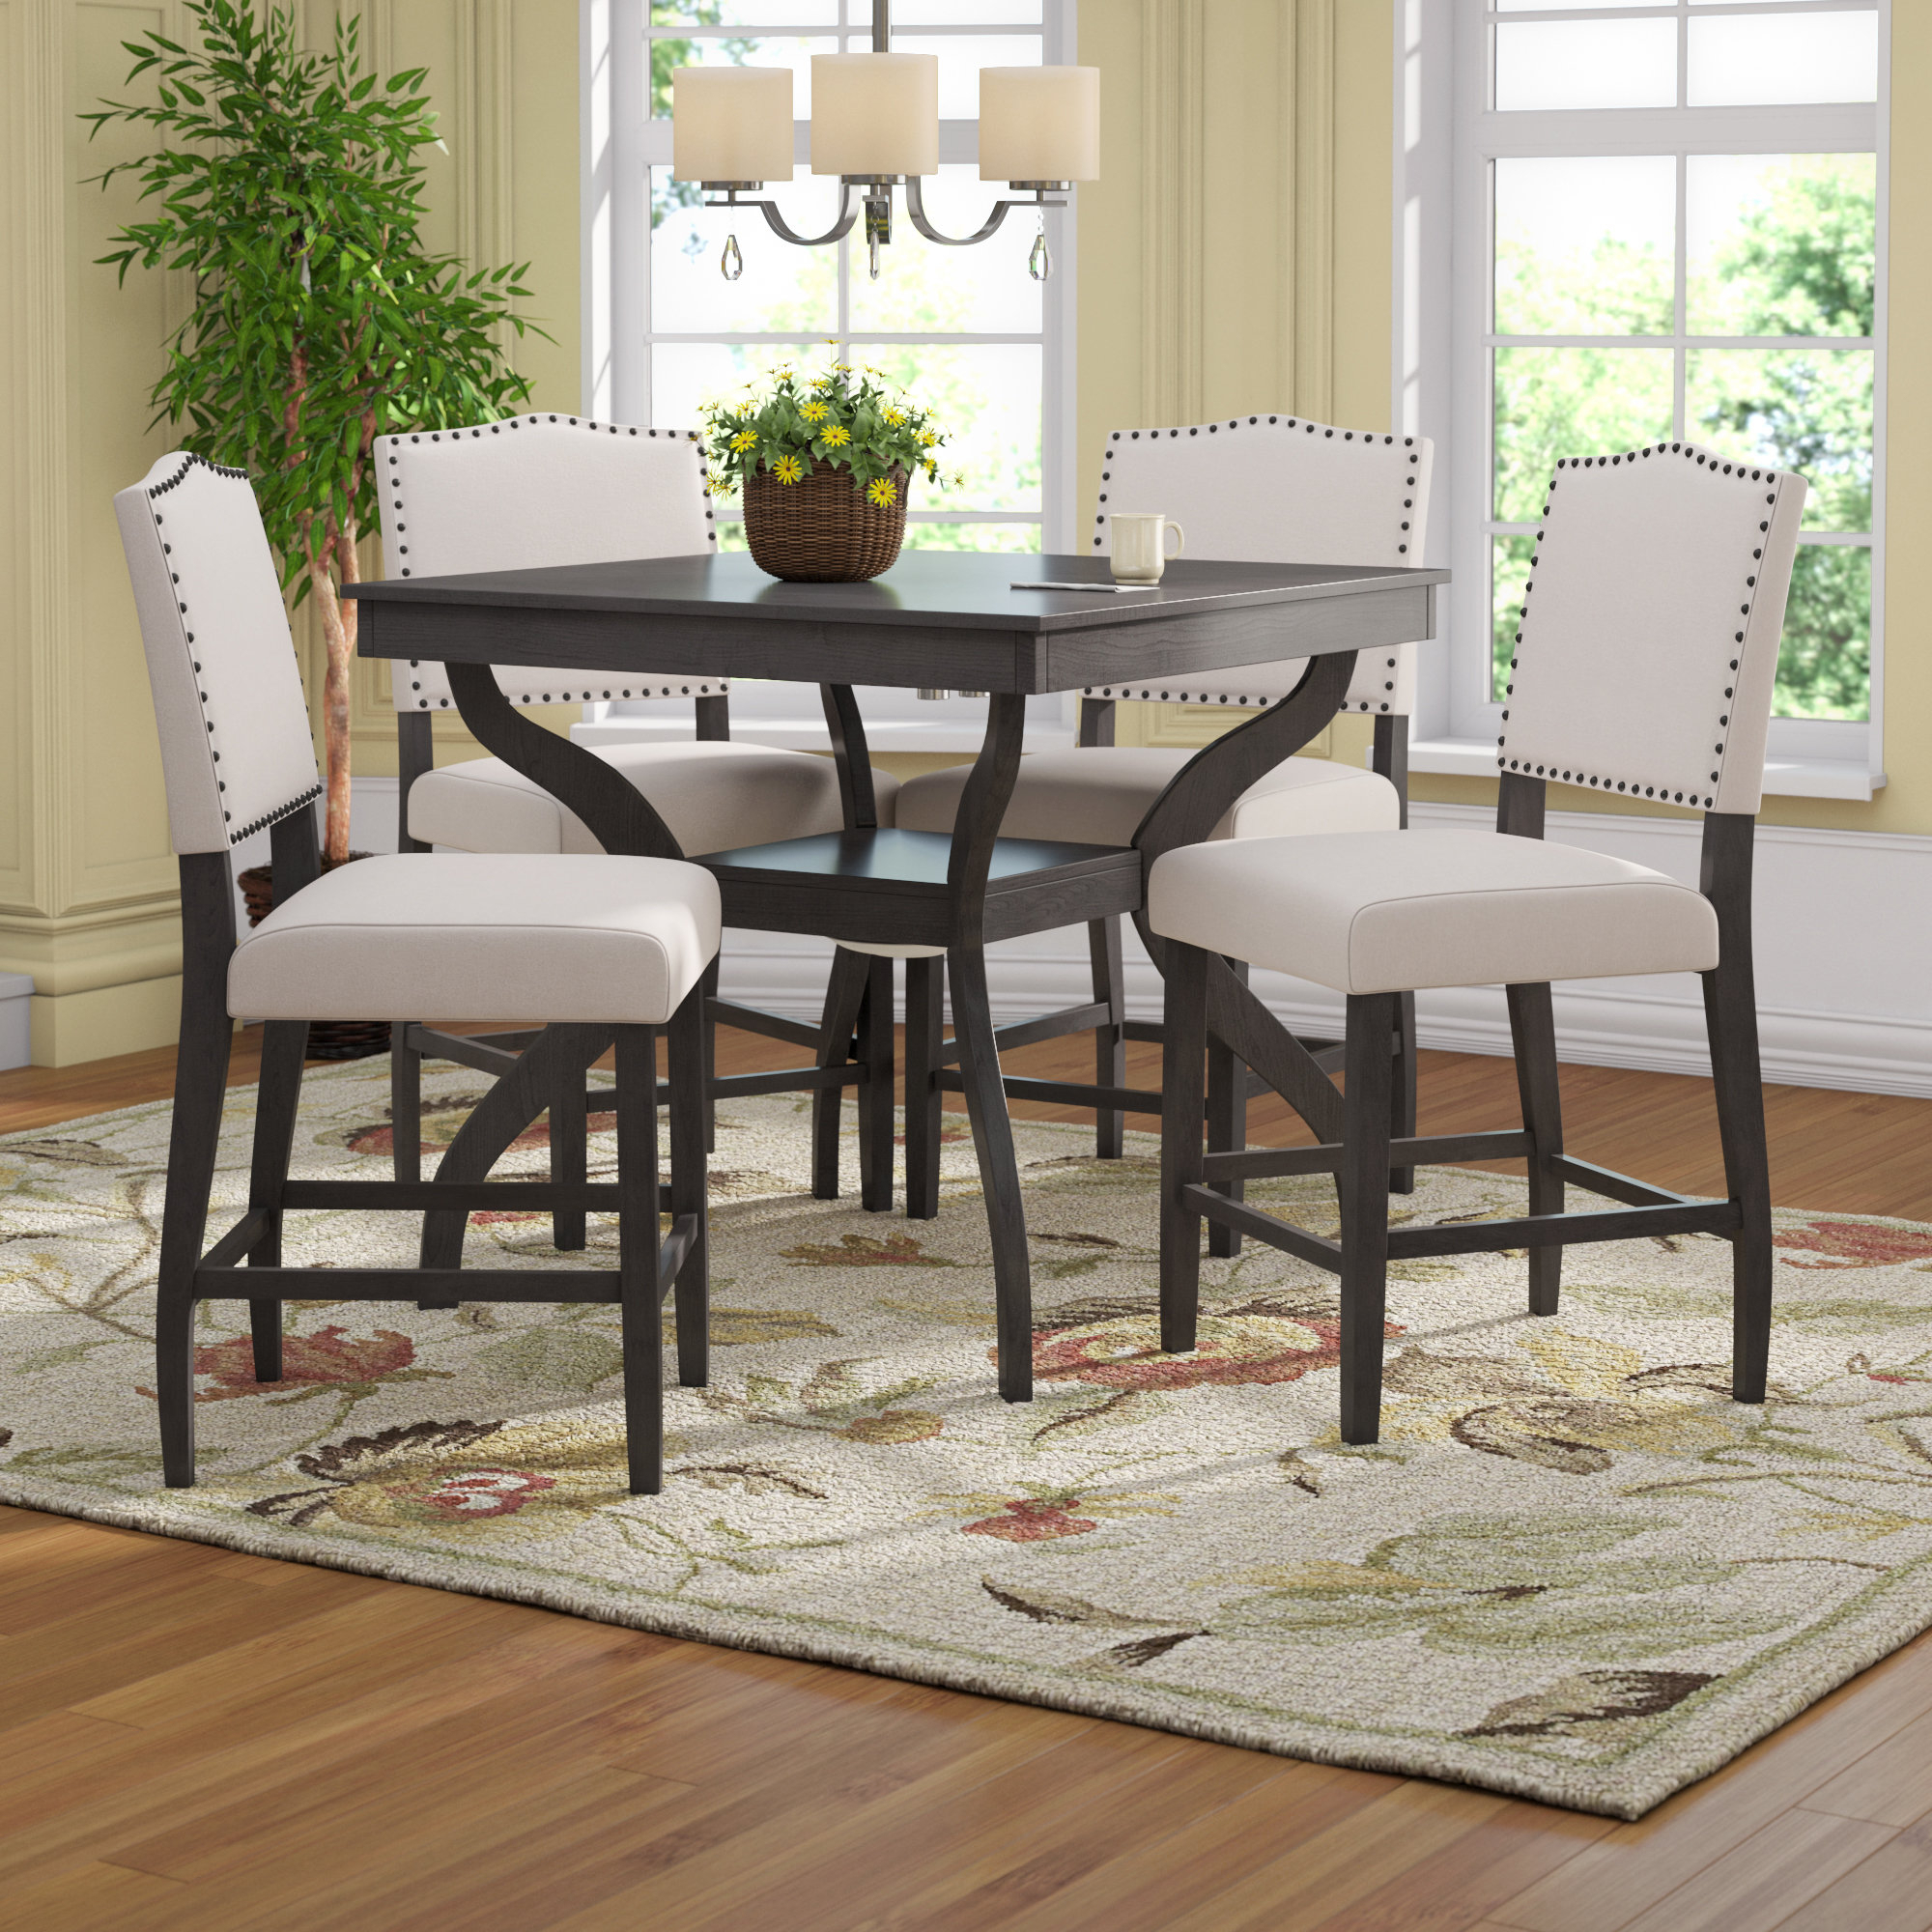 Preferred Ephraim 5 Piece Dining Sets Pertaining To Darby Home Co Campton 5 Piece Counter Height Dining Set & Reviews (View 2 of 25)